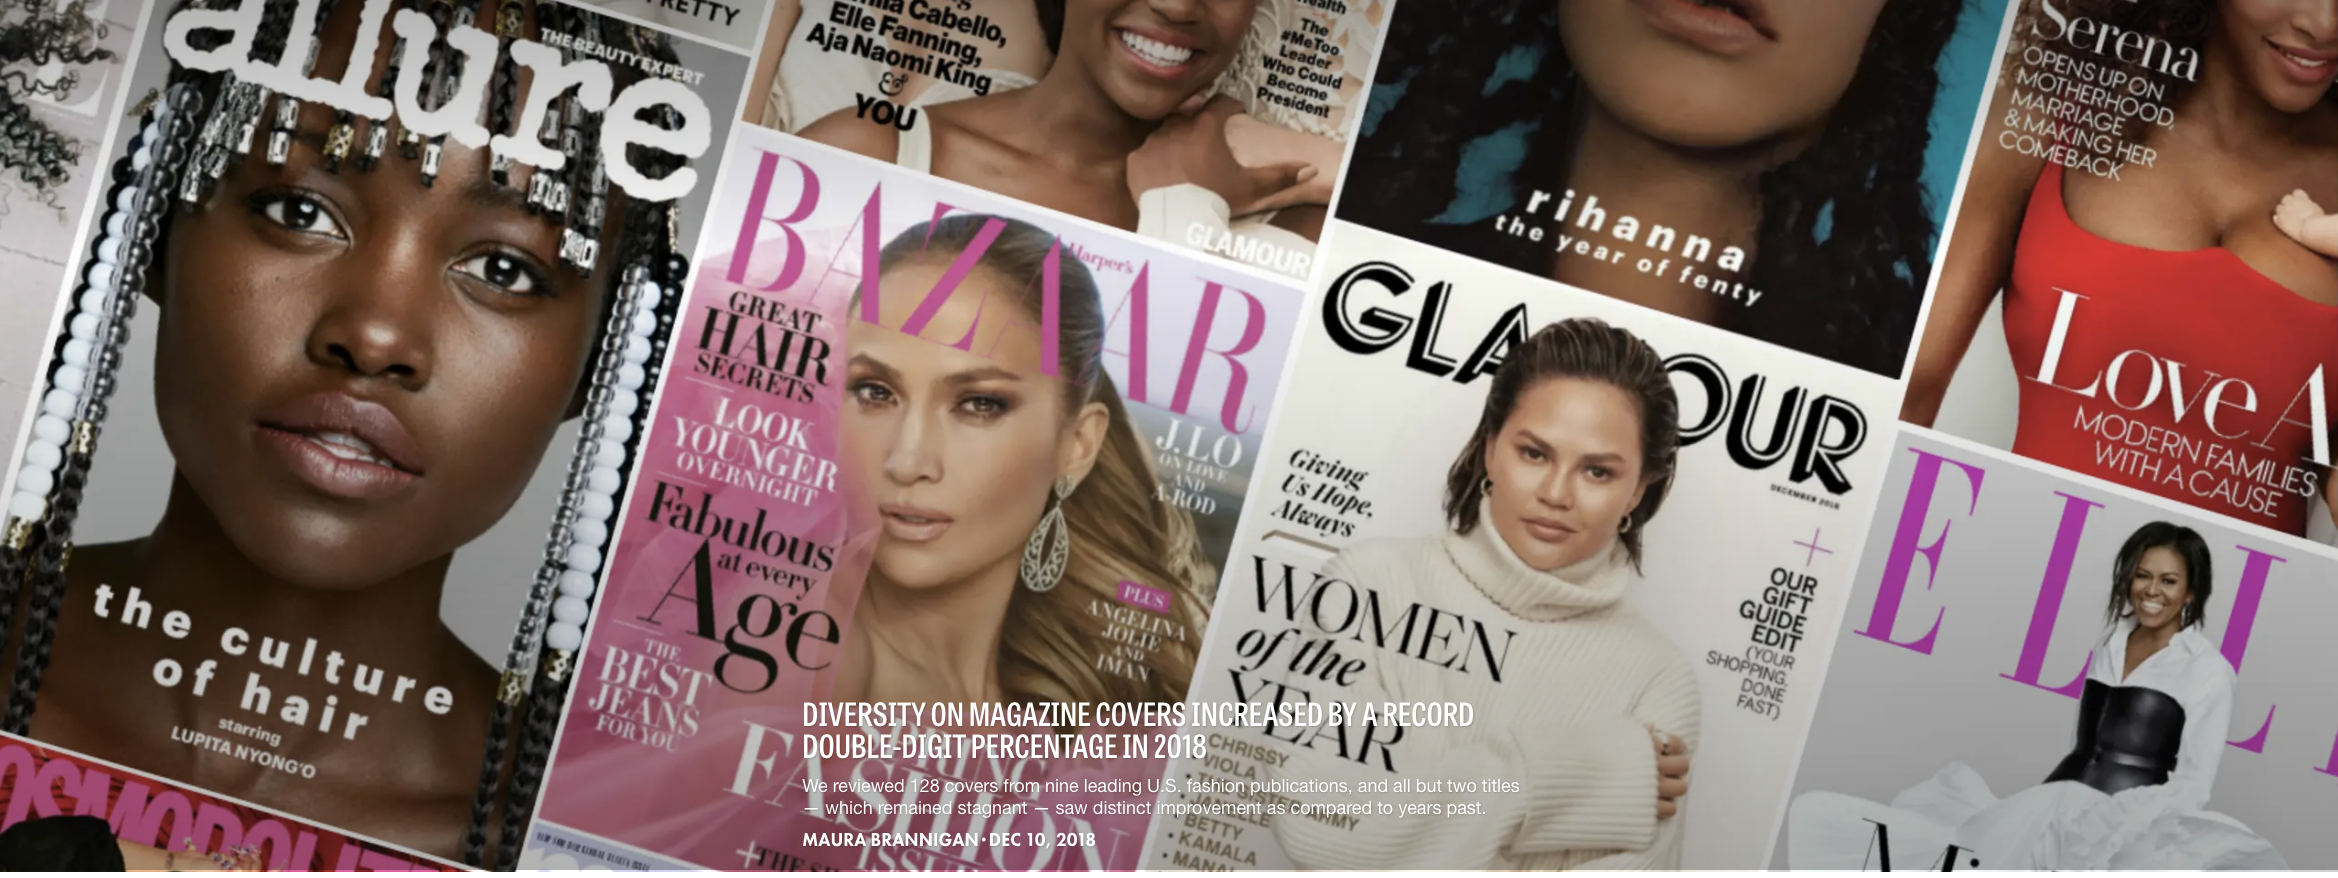 Record-breaking year for diversity in magazine covers